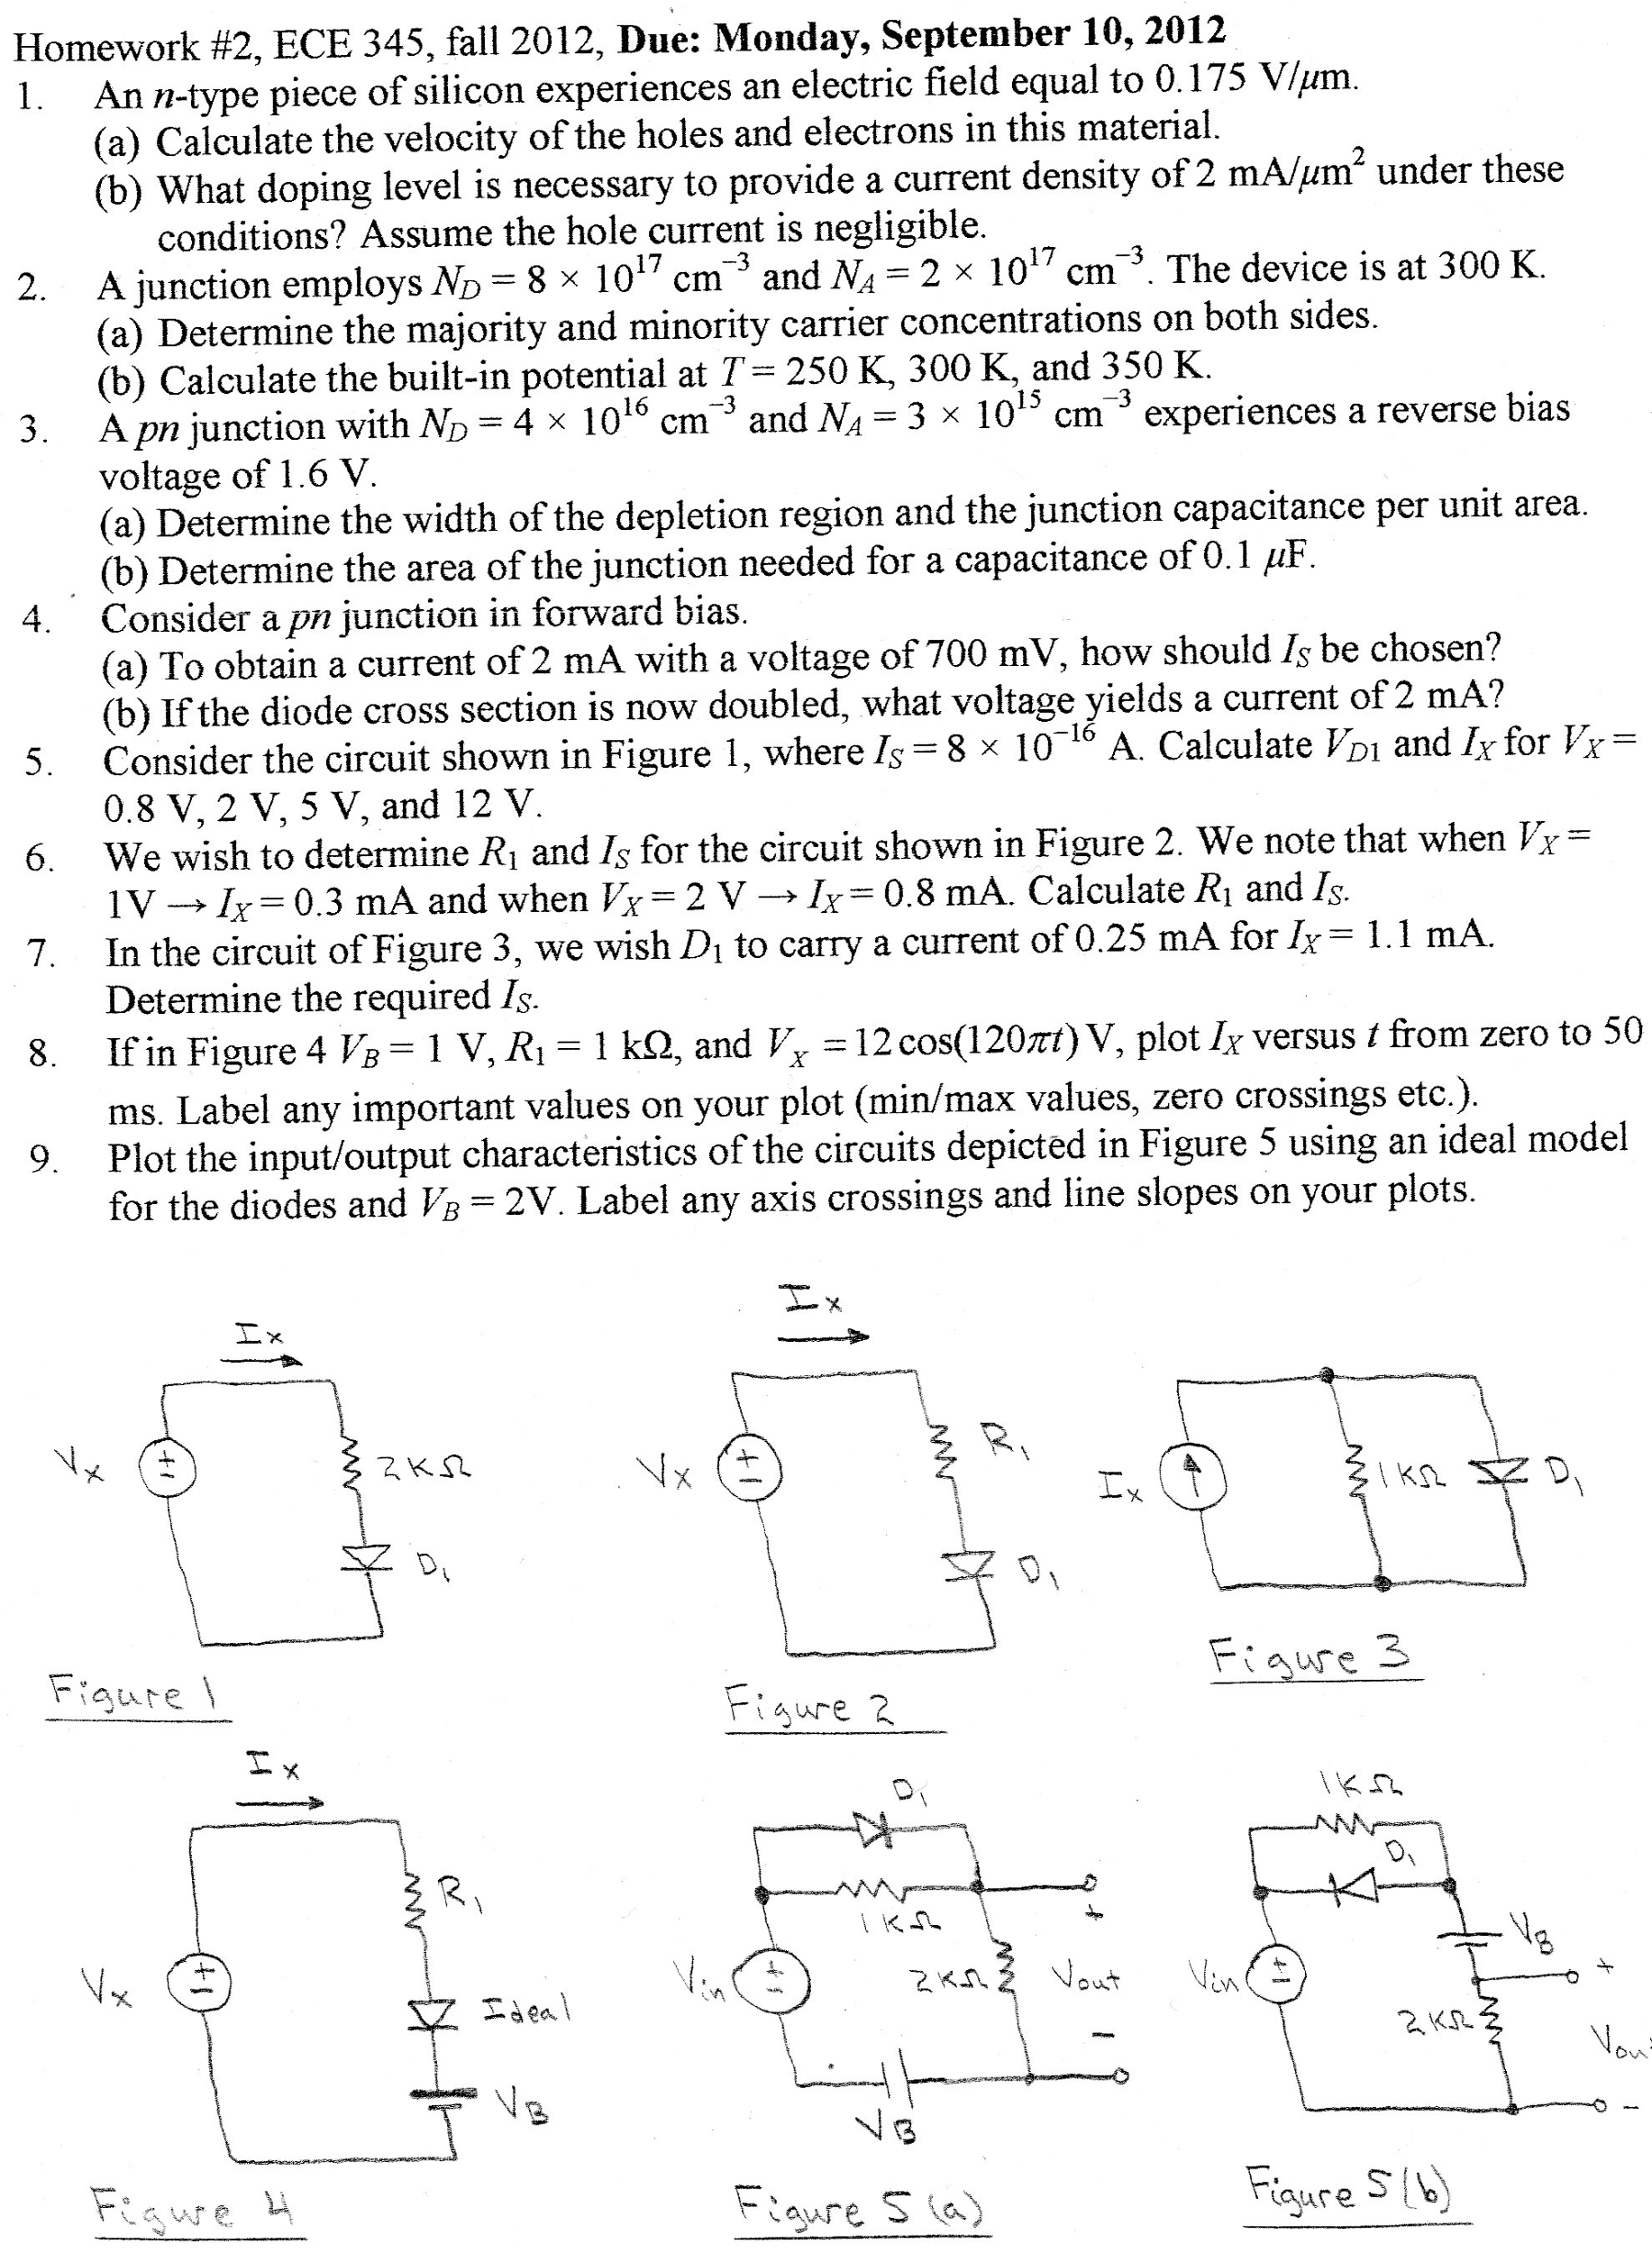 Homework #2, ECE 345, fall 2012, Due: Monday, Sept